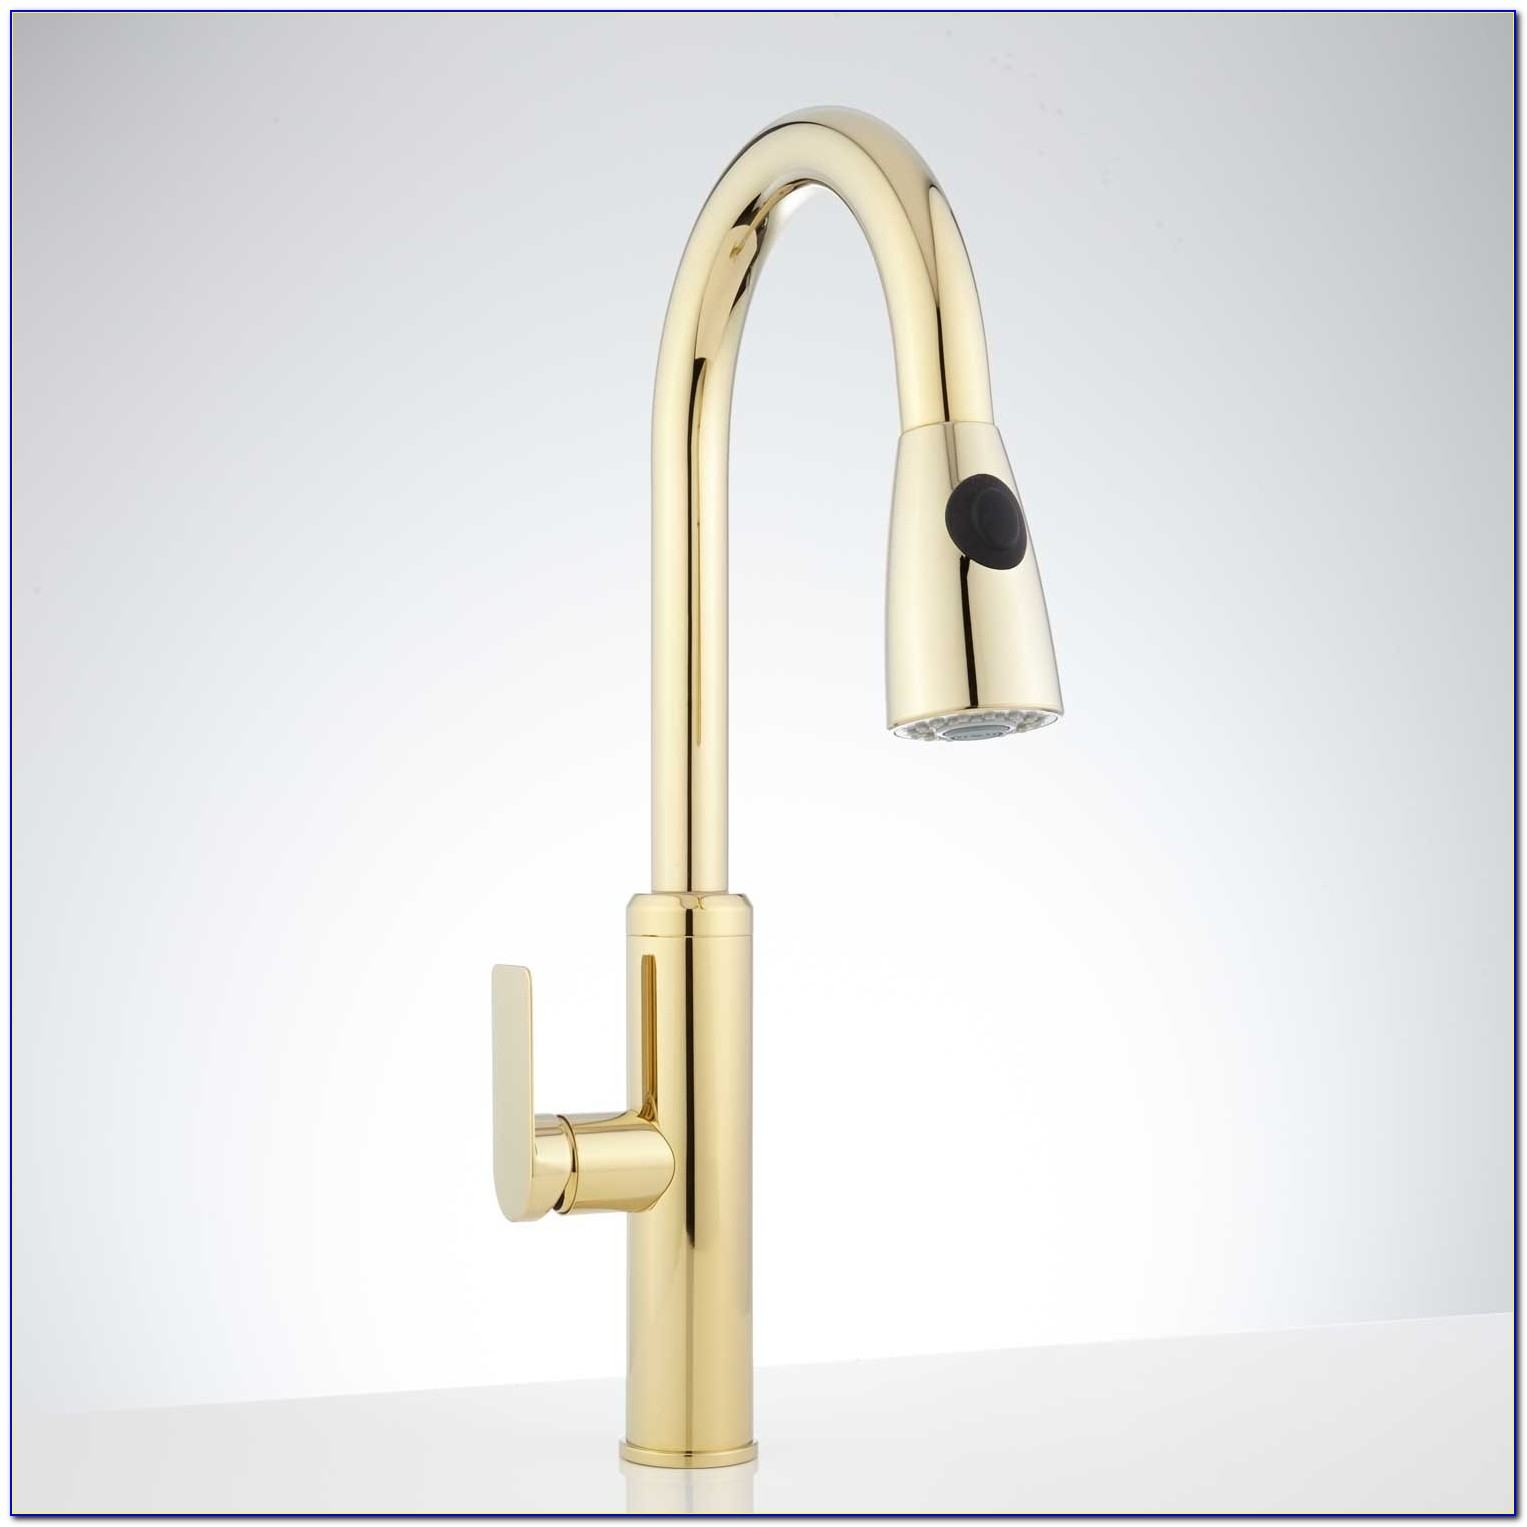 Kohler Polished Brass Kitchen Faucet Kohler Polished Brass Kitchen Faucet Polished Brass Kitchen Faucets Sinks And Faucets Decoration 1500 X 1500